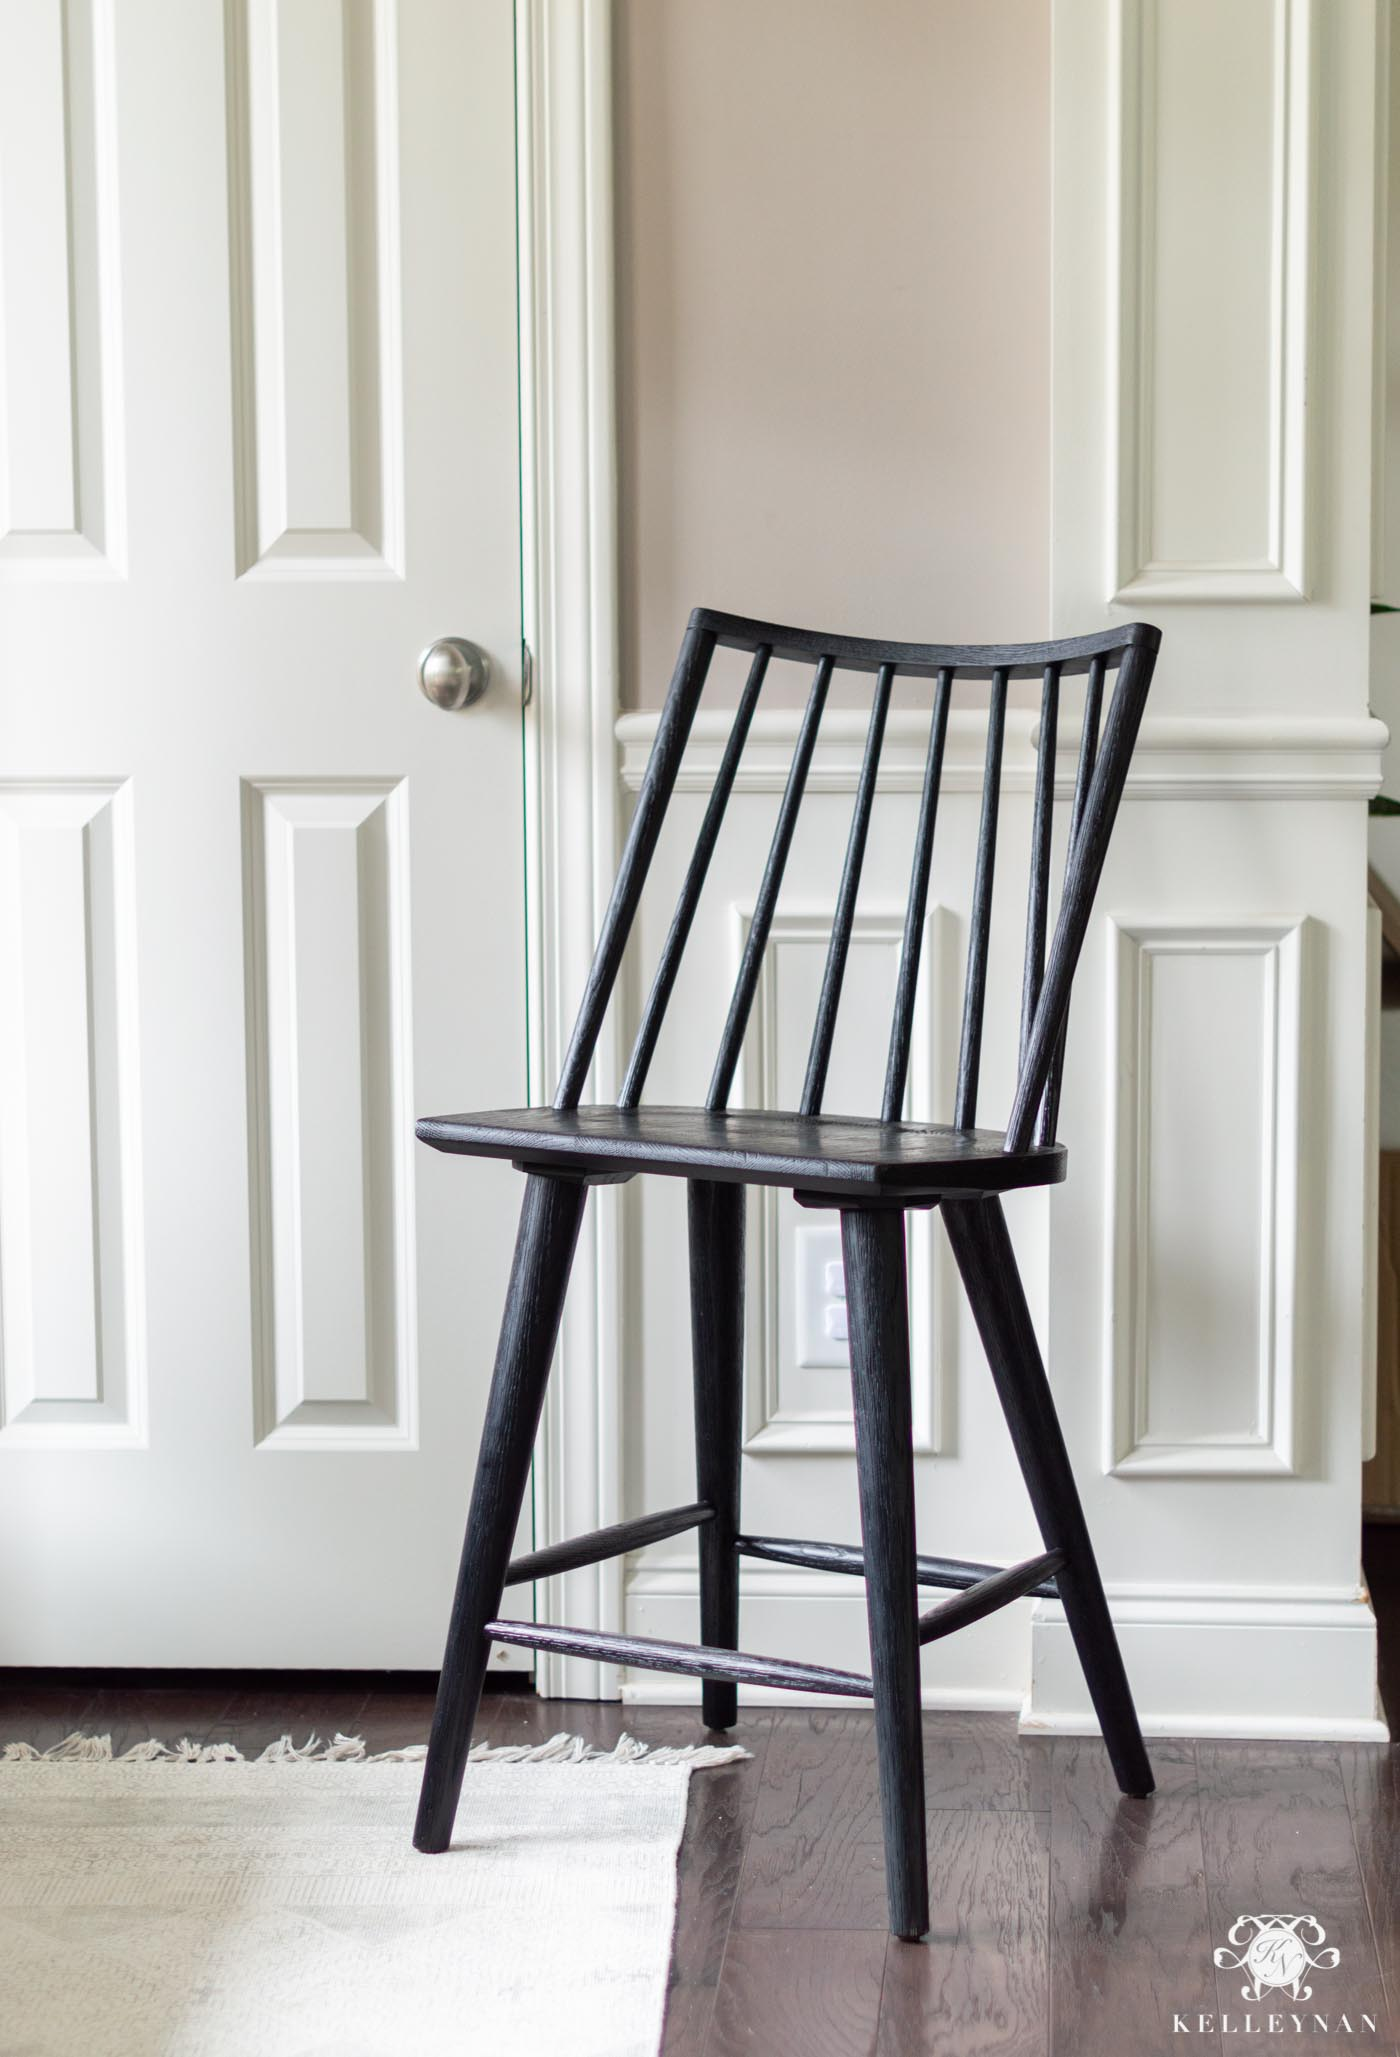 Favorite Black Windsor Barstools, Chairs, and Spindle Furniture Favorites